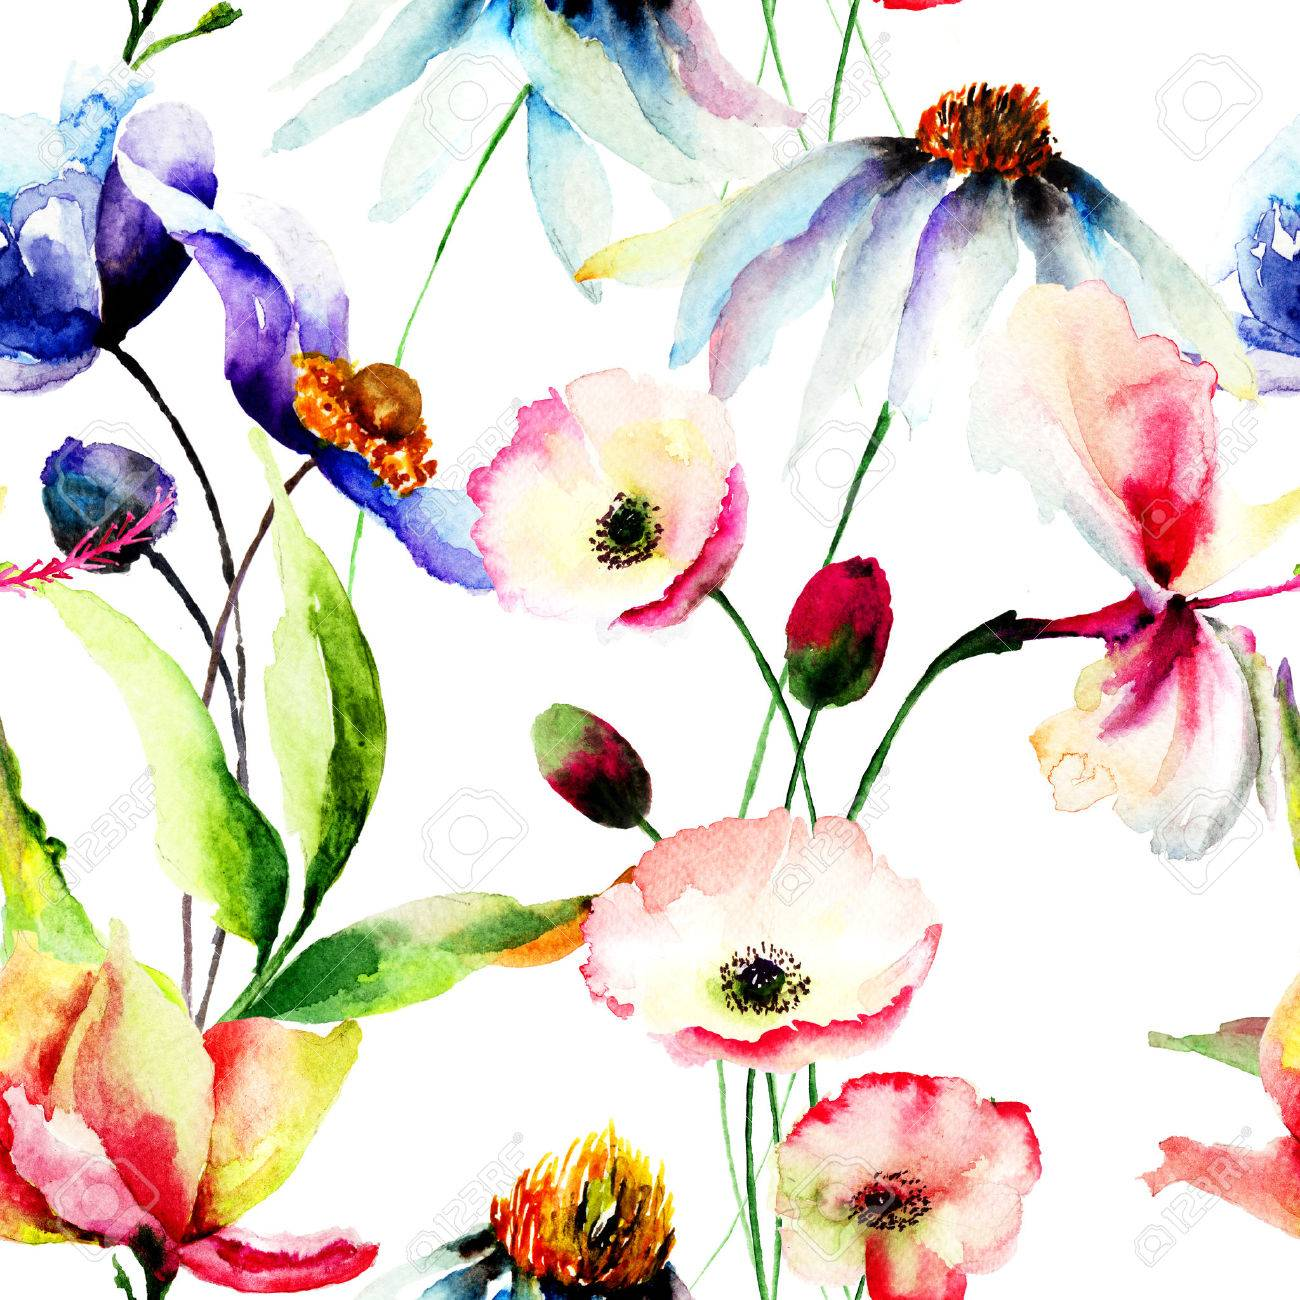 Seamless wallpaper with wild flowers, watercolor illustration Stock Illustration - 36463900